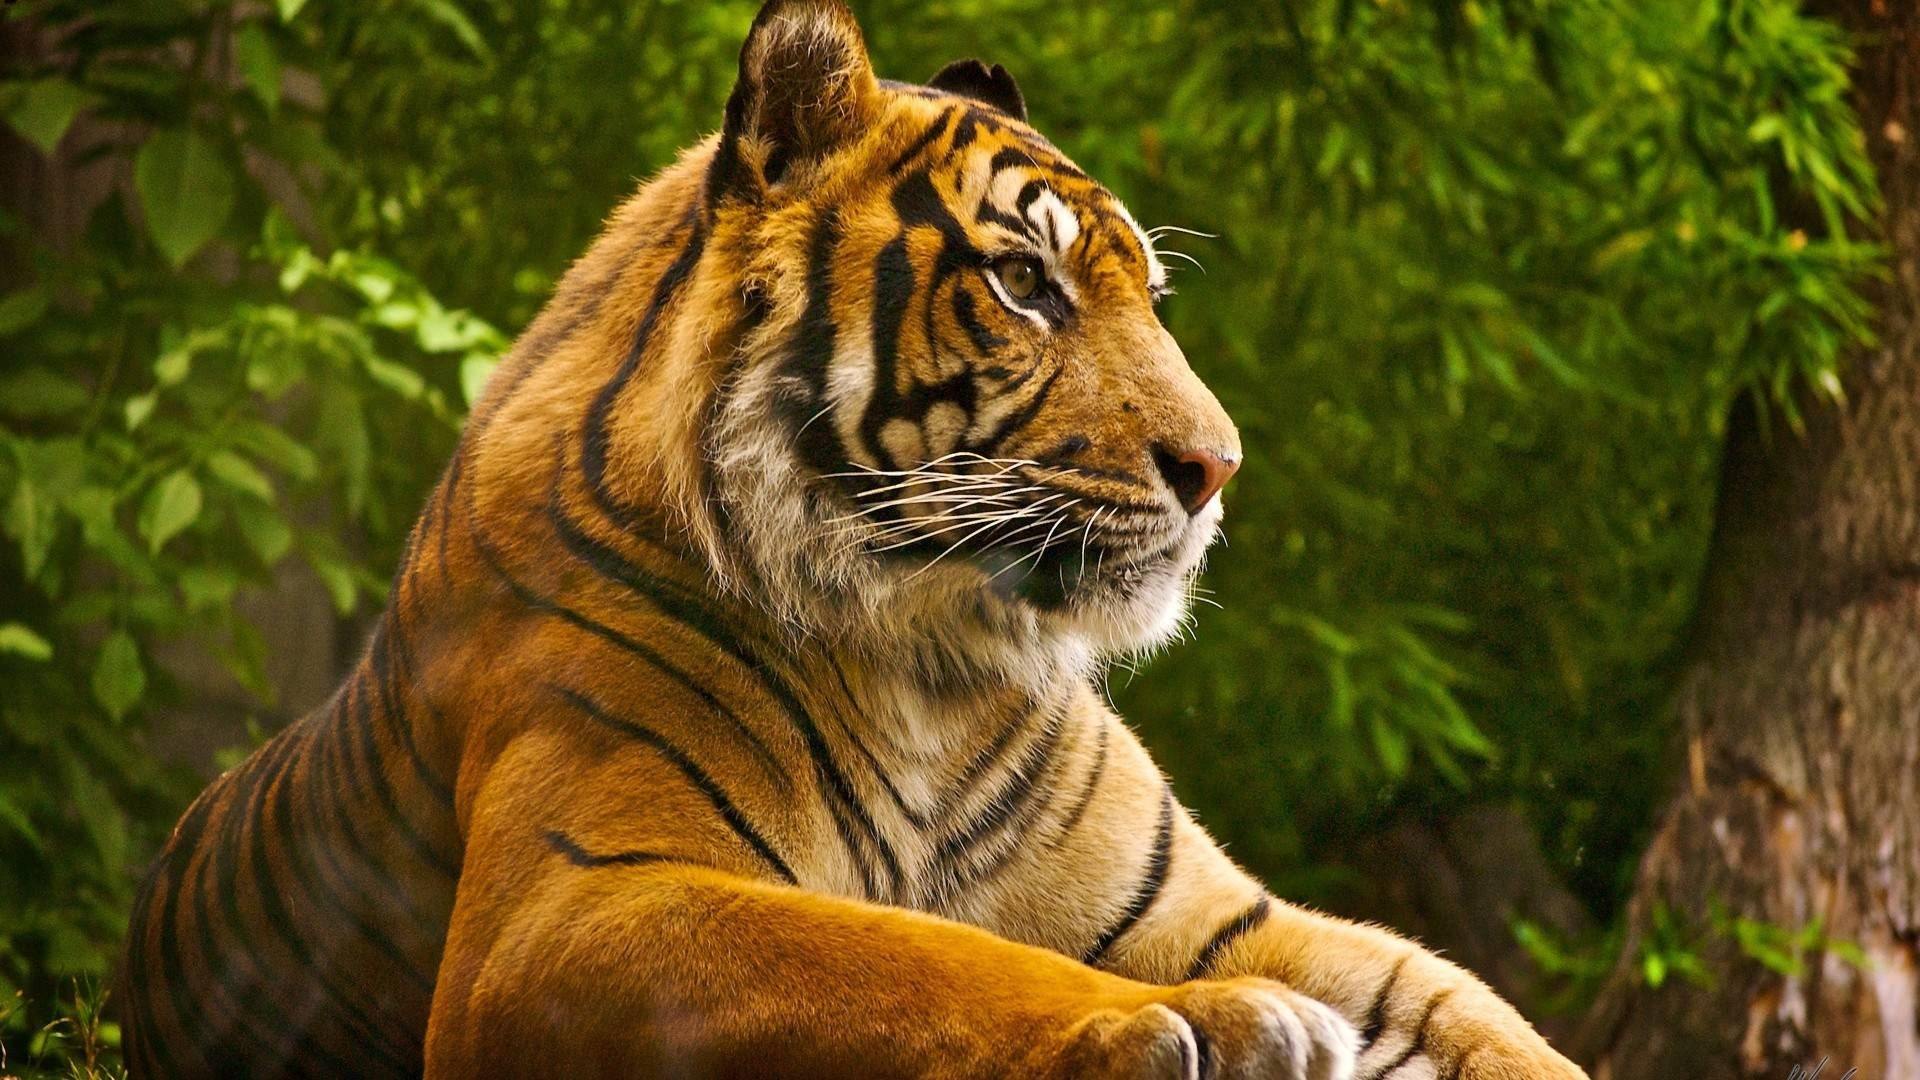 beautiful nature iphone wallpaper: nature animals wallpapers for